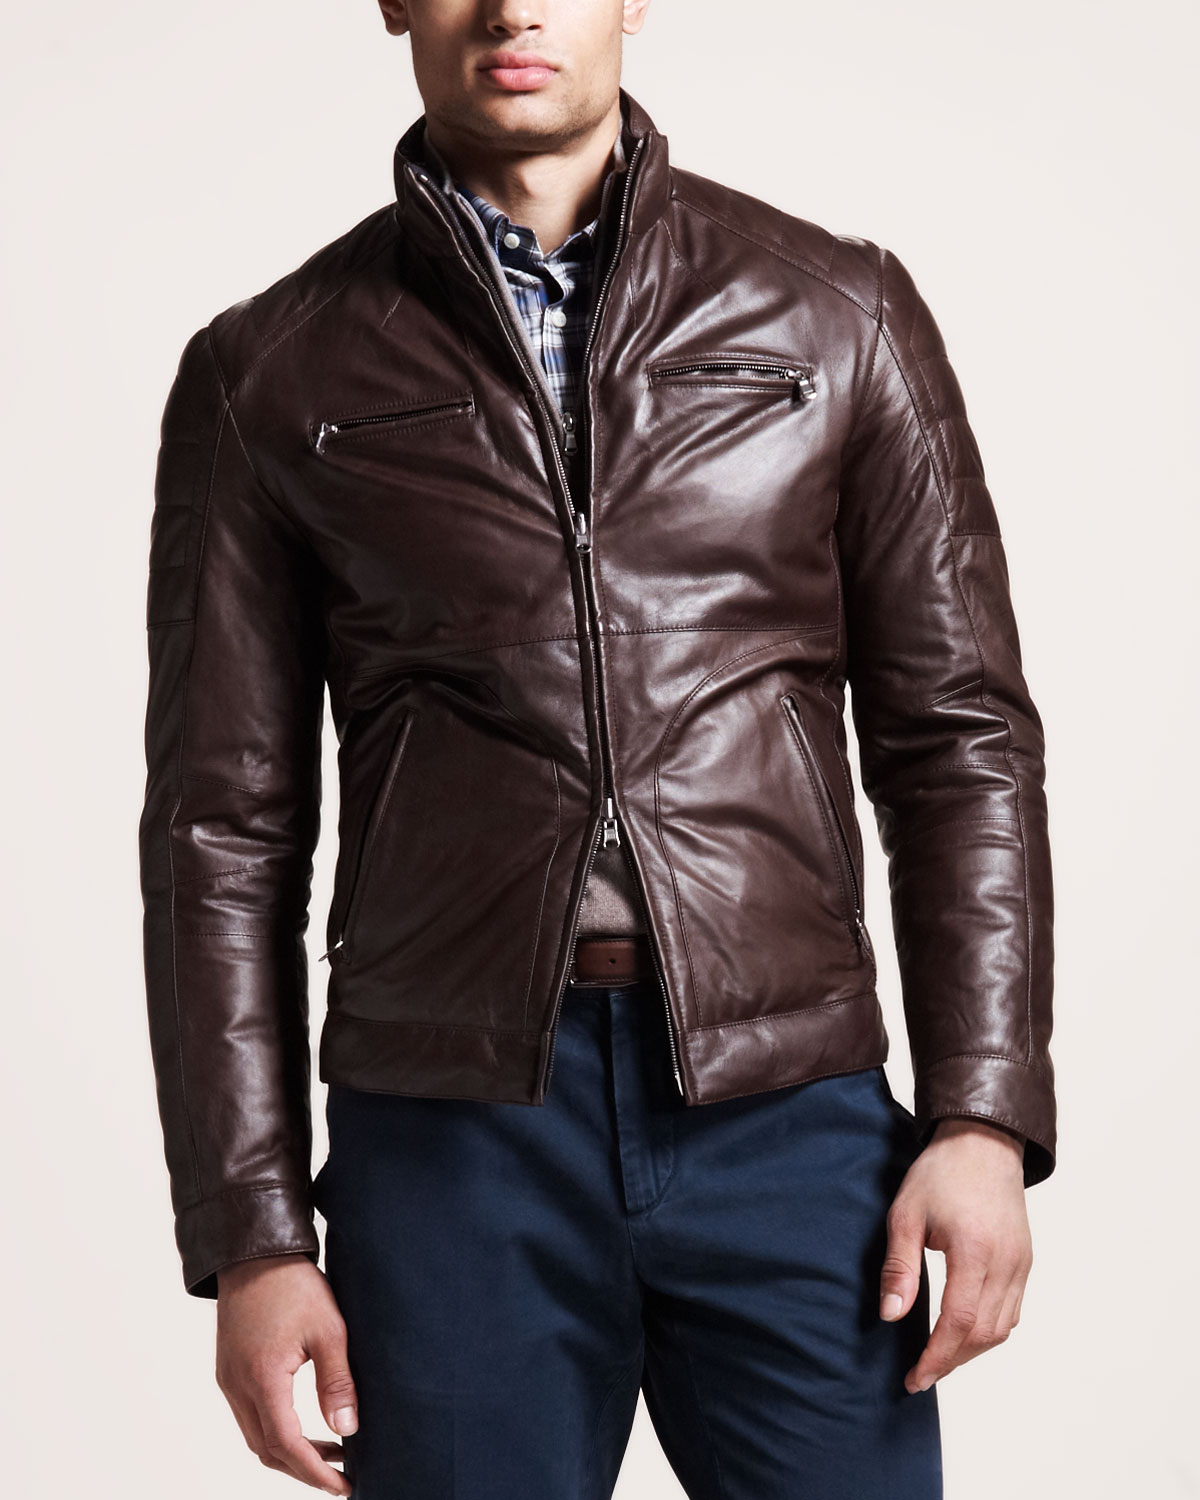 Brown Leather Motorcycle Jackets For Men Jacket To